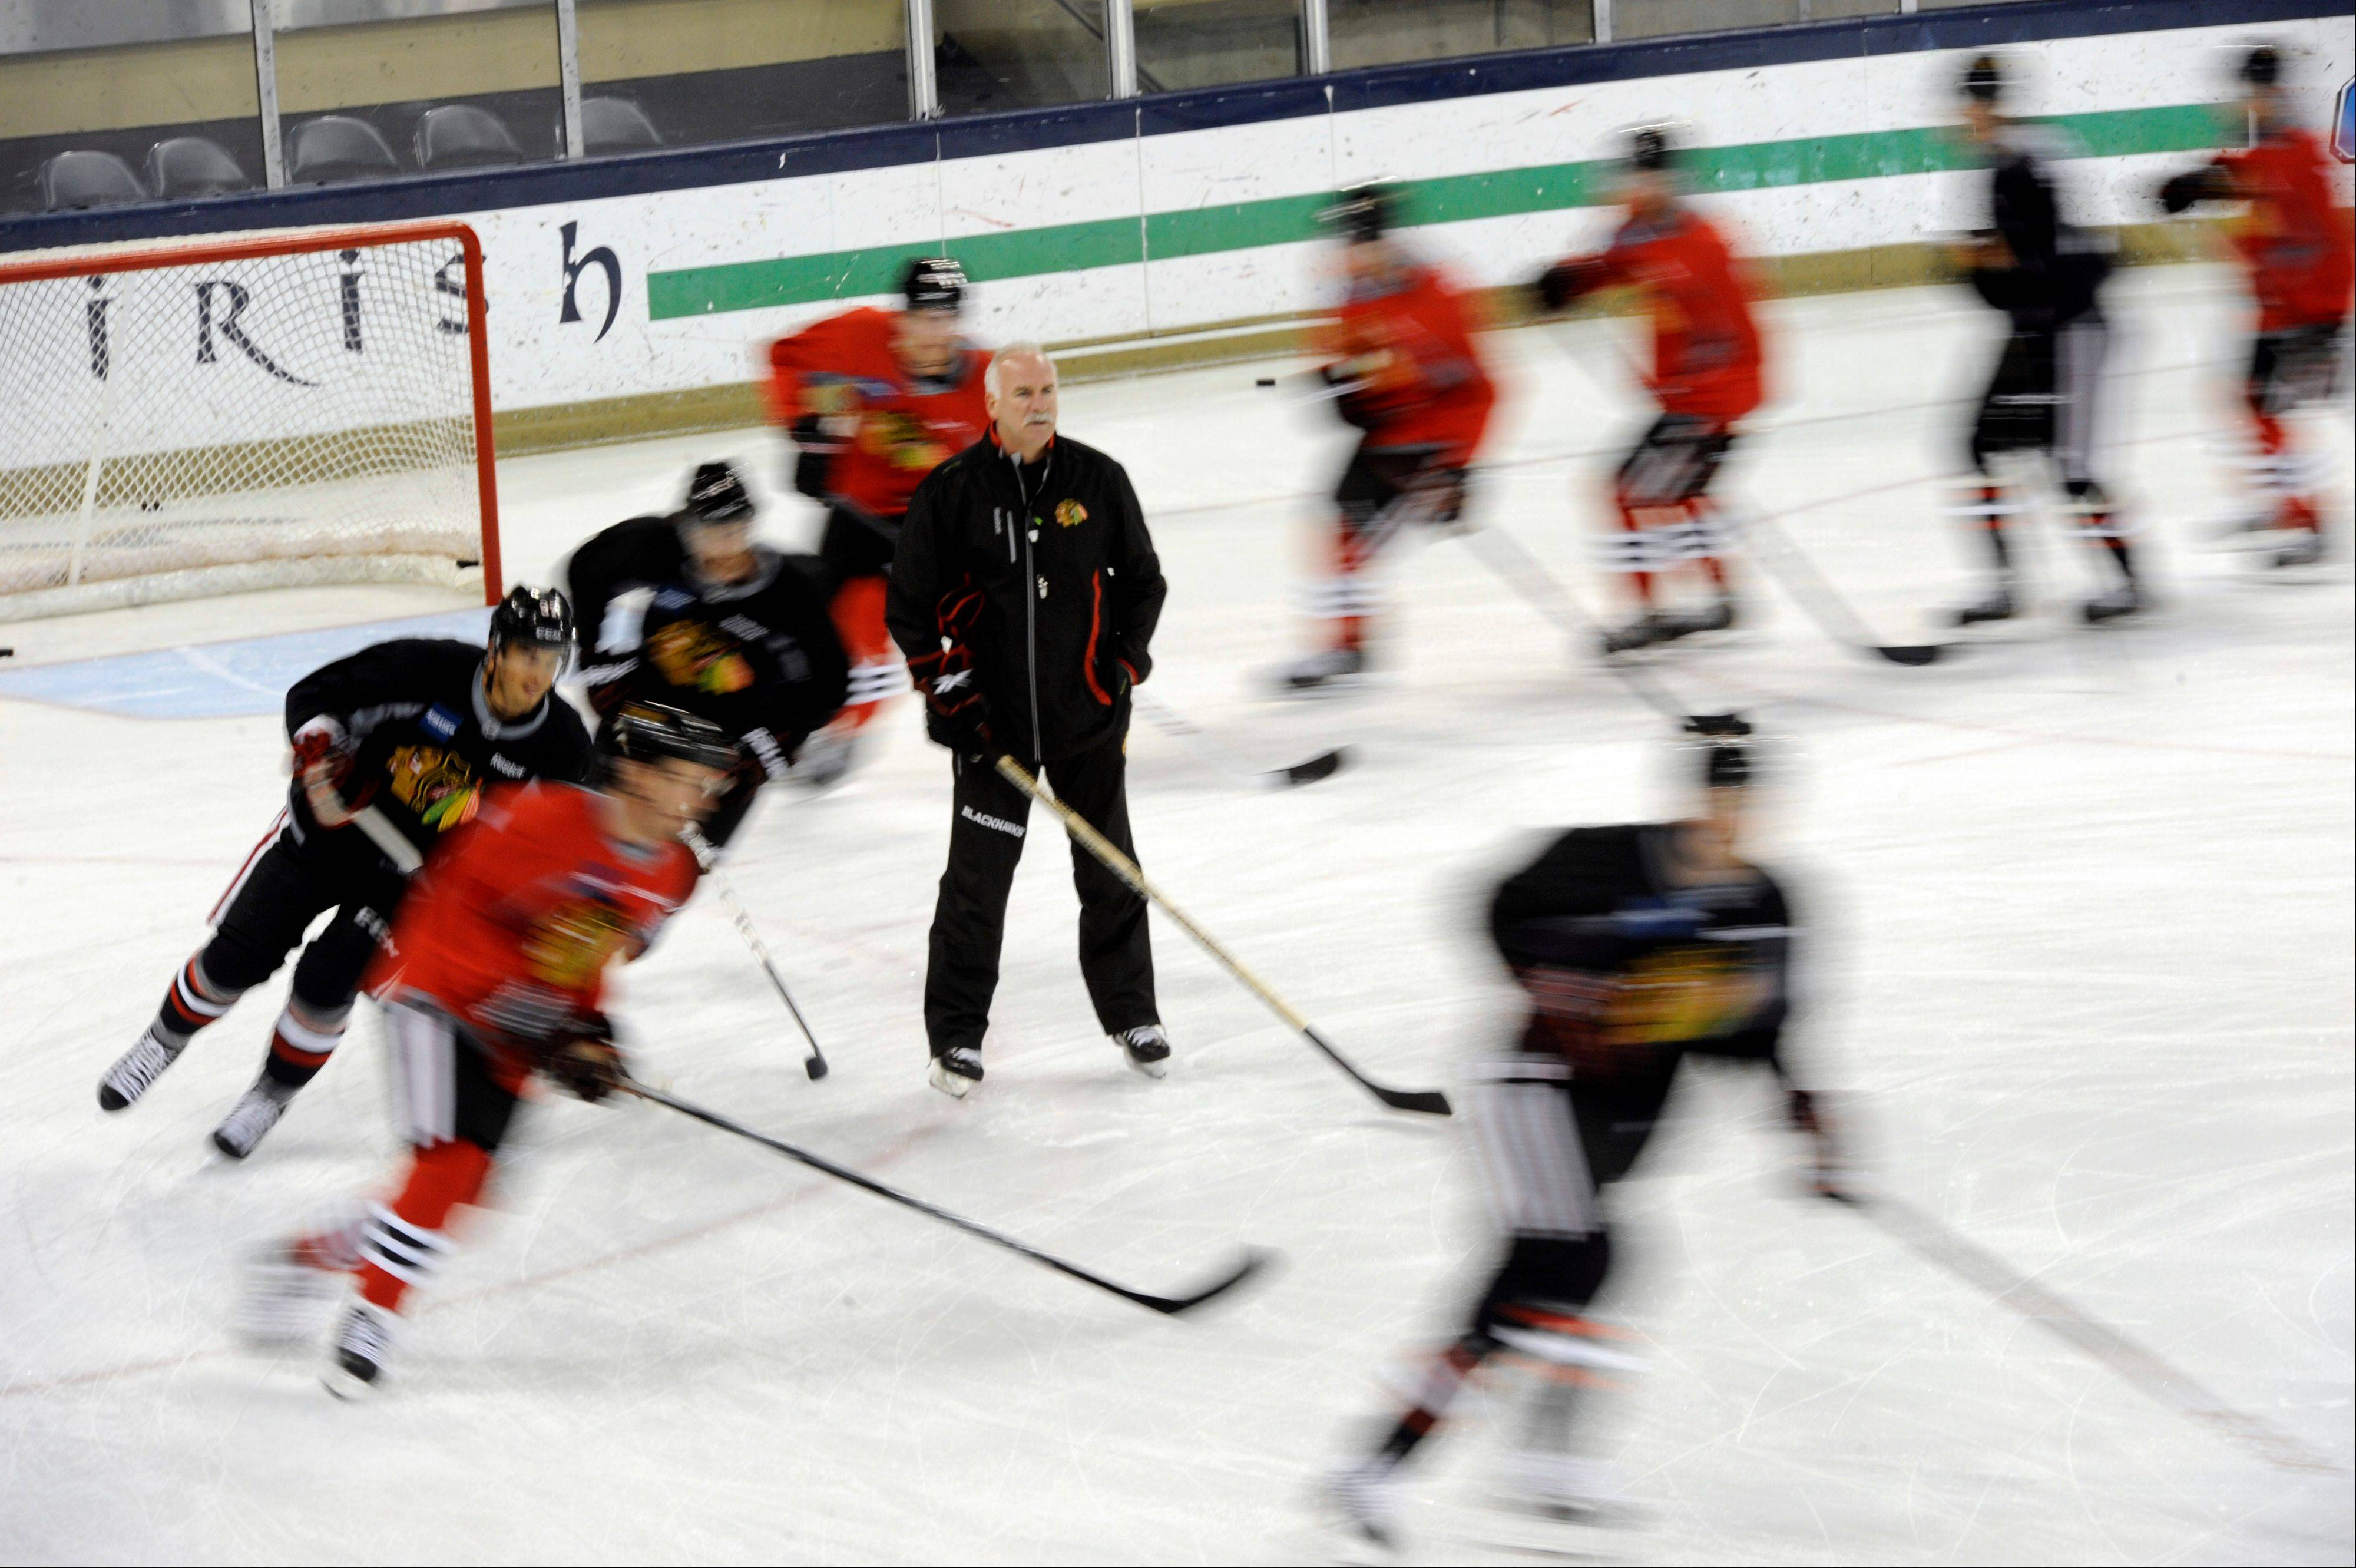 The Blackhawks are a blur as they skate past head coach Joel Quenneville at start of training camp Thursday.